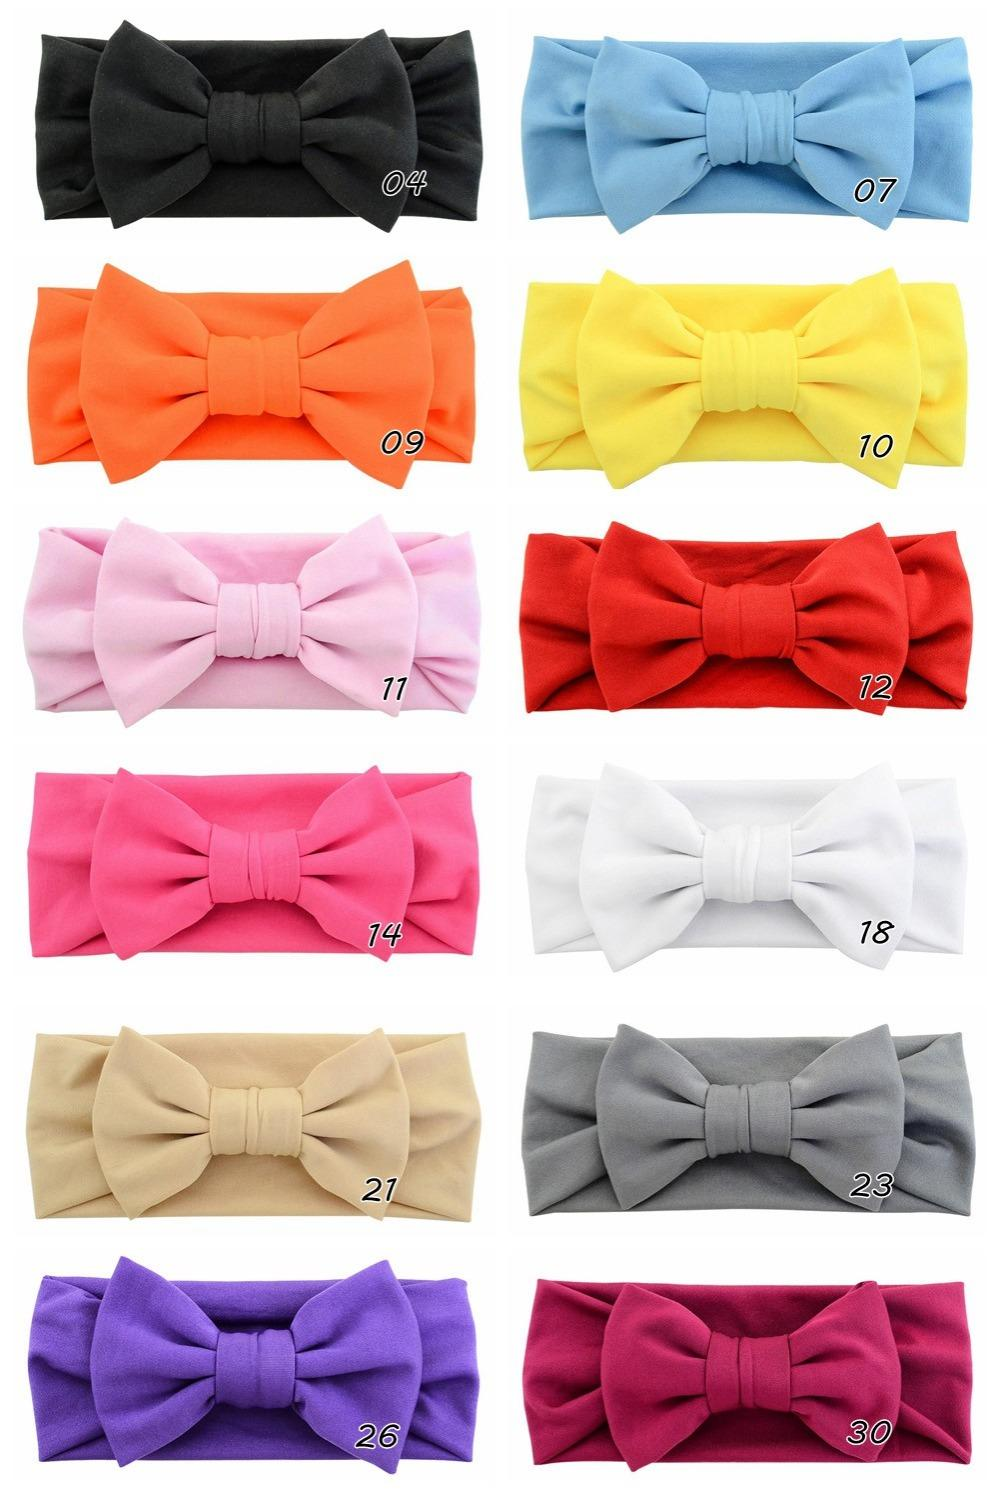 New Headband Knot Tie Headwrap Kids Hairband Bandanas Turban stretchy Girls Hair Accessories Summer Style 748